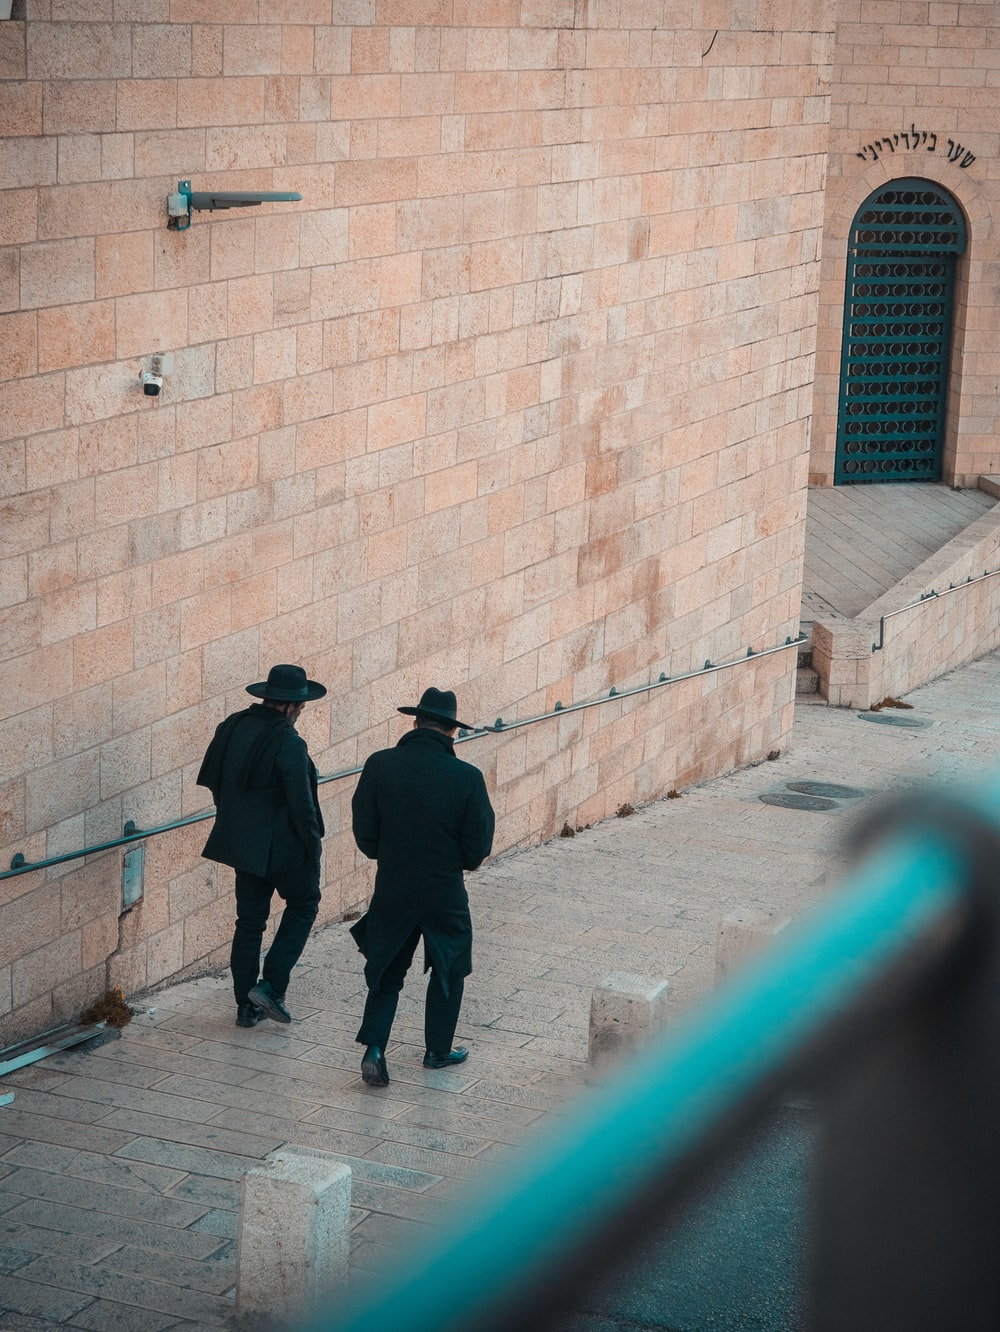 two person wearing black suit and hat walking on pathway